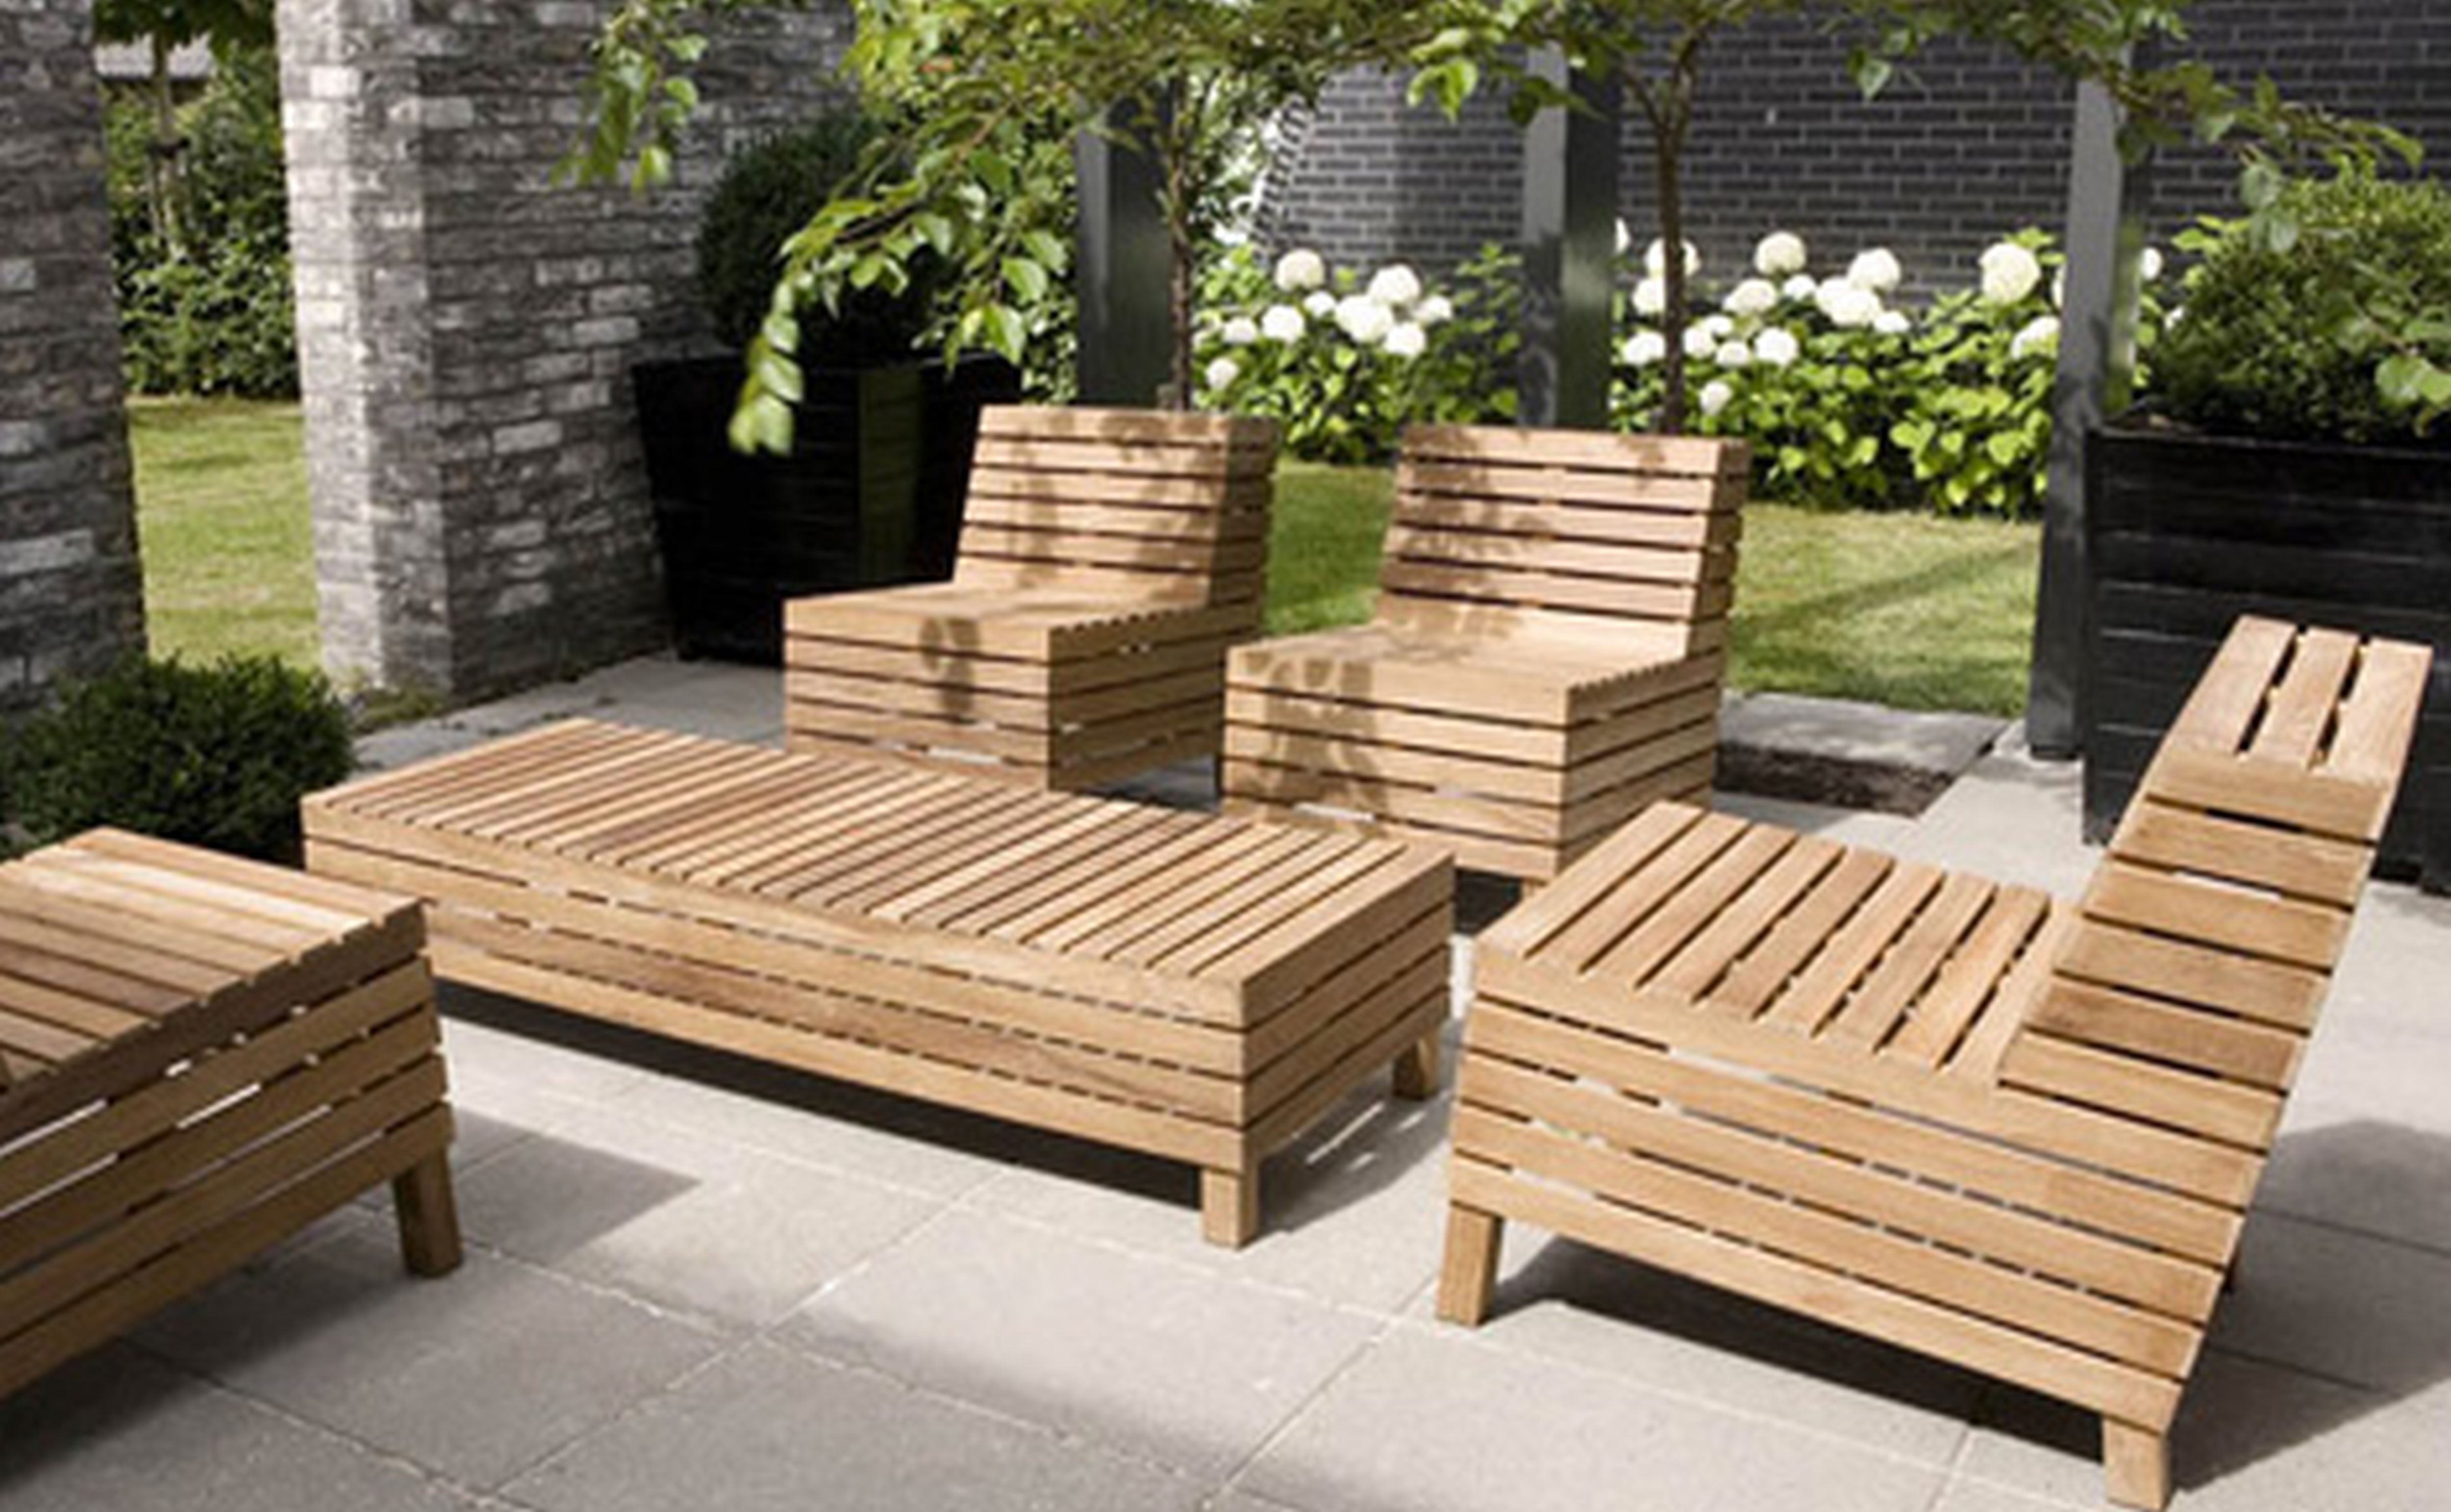 15+ Teak Patio Furniture Ideas And How To Maintenance It